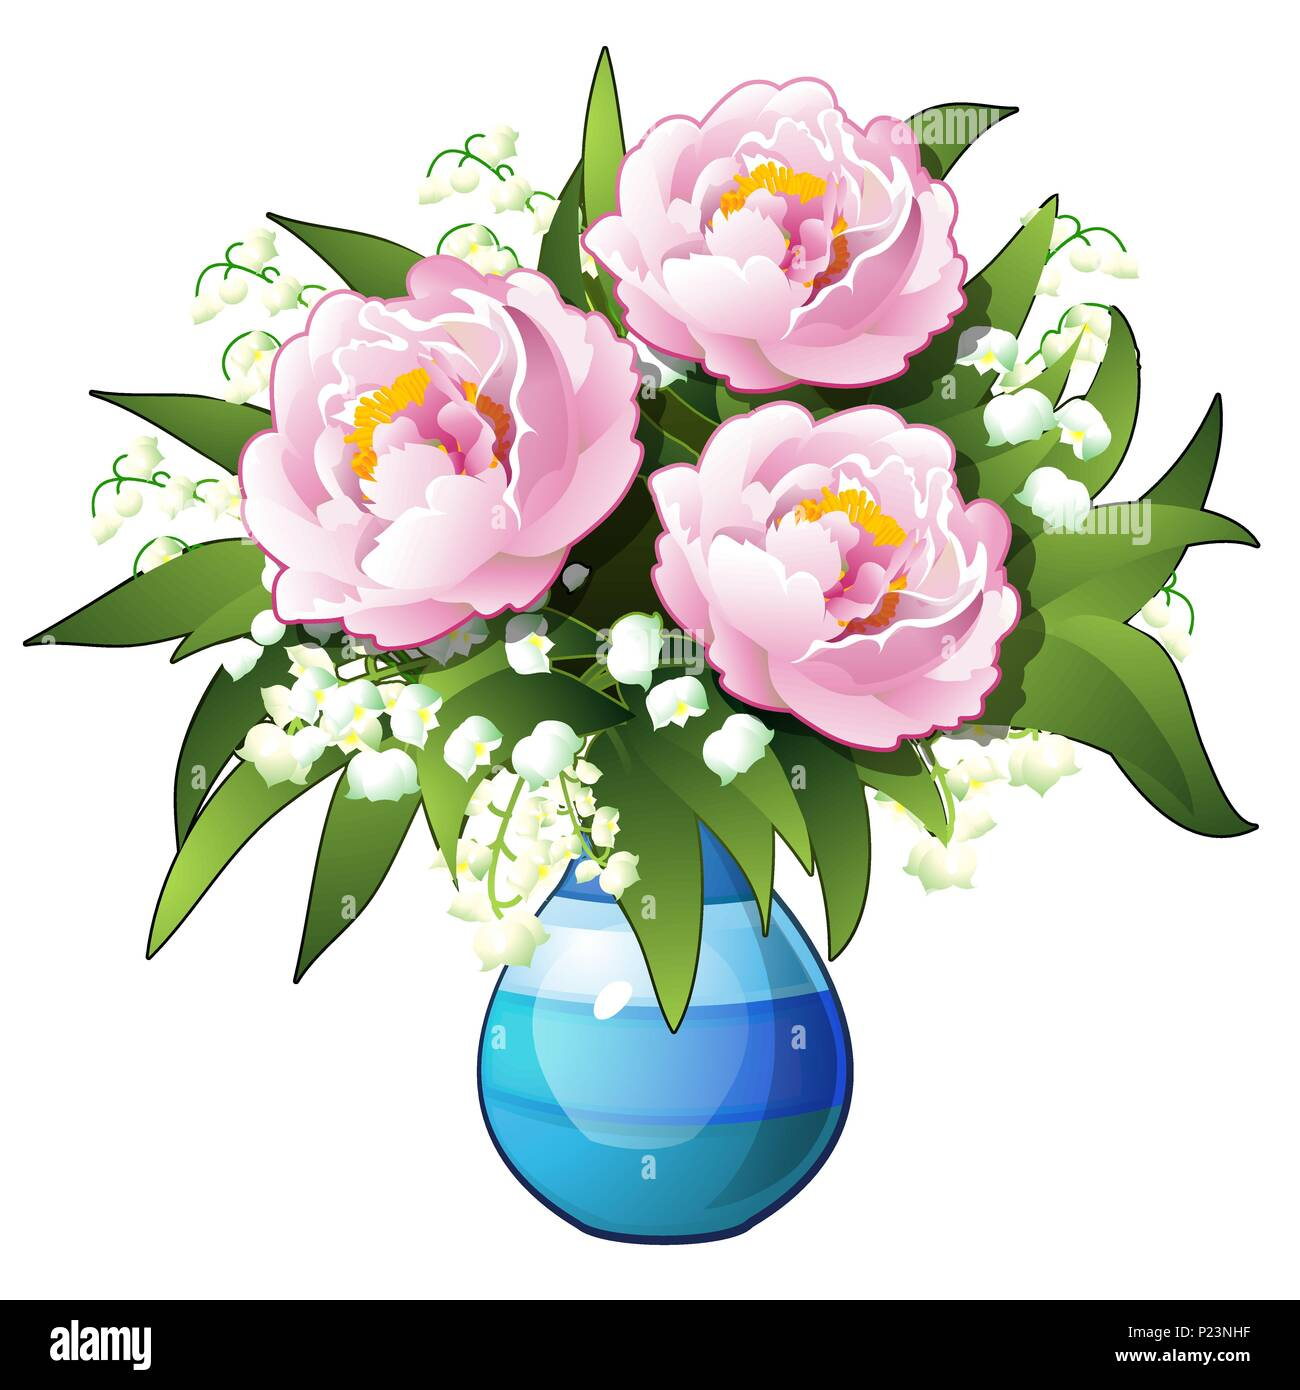 Bouquet of flowers lilies of the valley and peonies in a blue vase bouquet of flowers lilies of the valley and peonies in a blue vase isolated on white background vector cartoon close up illustration izmirmasajfo